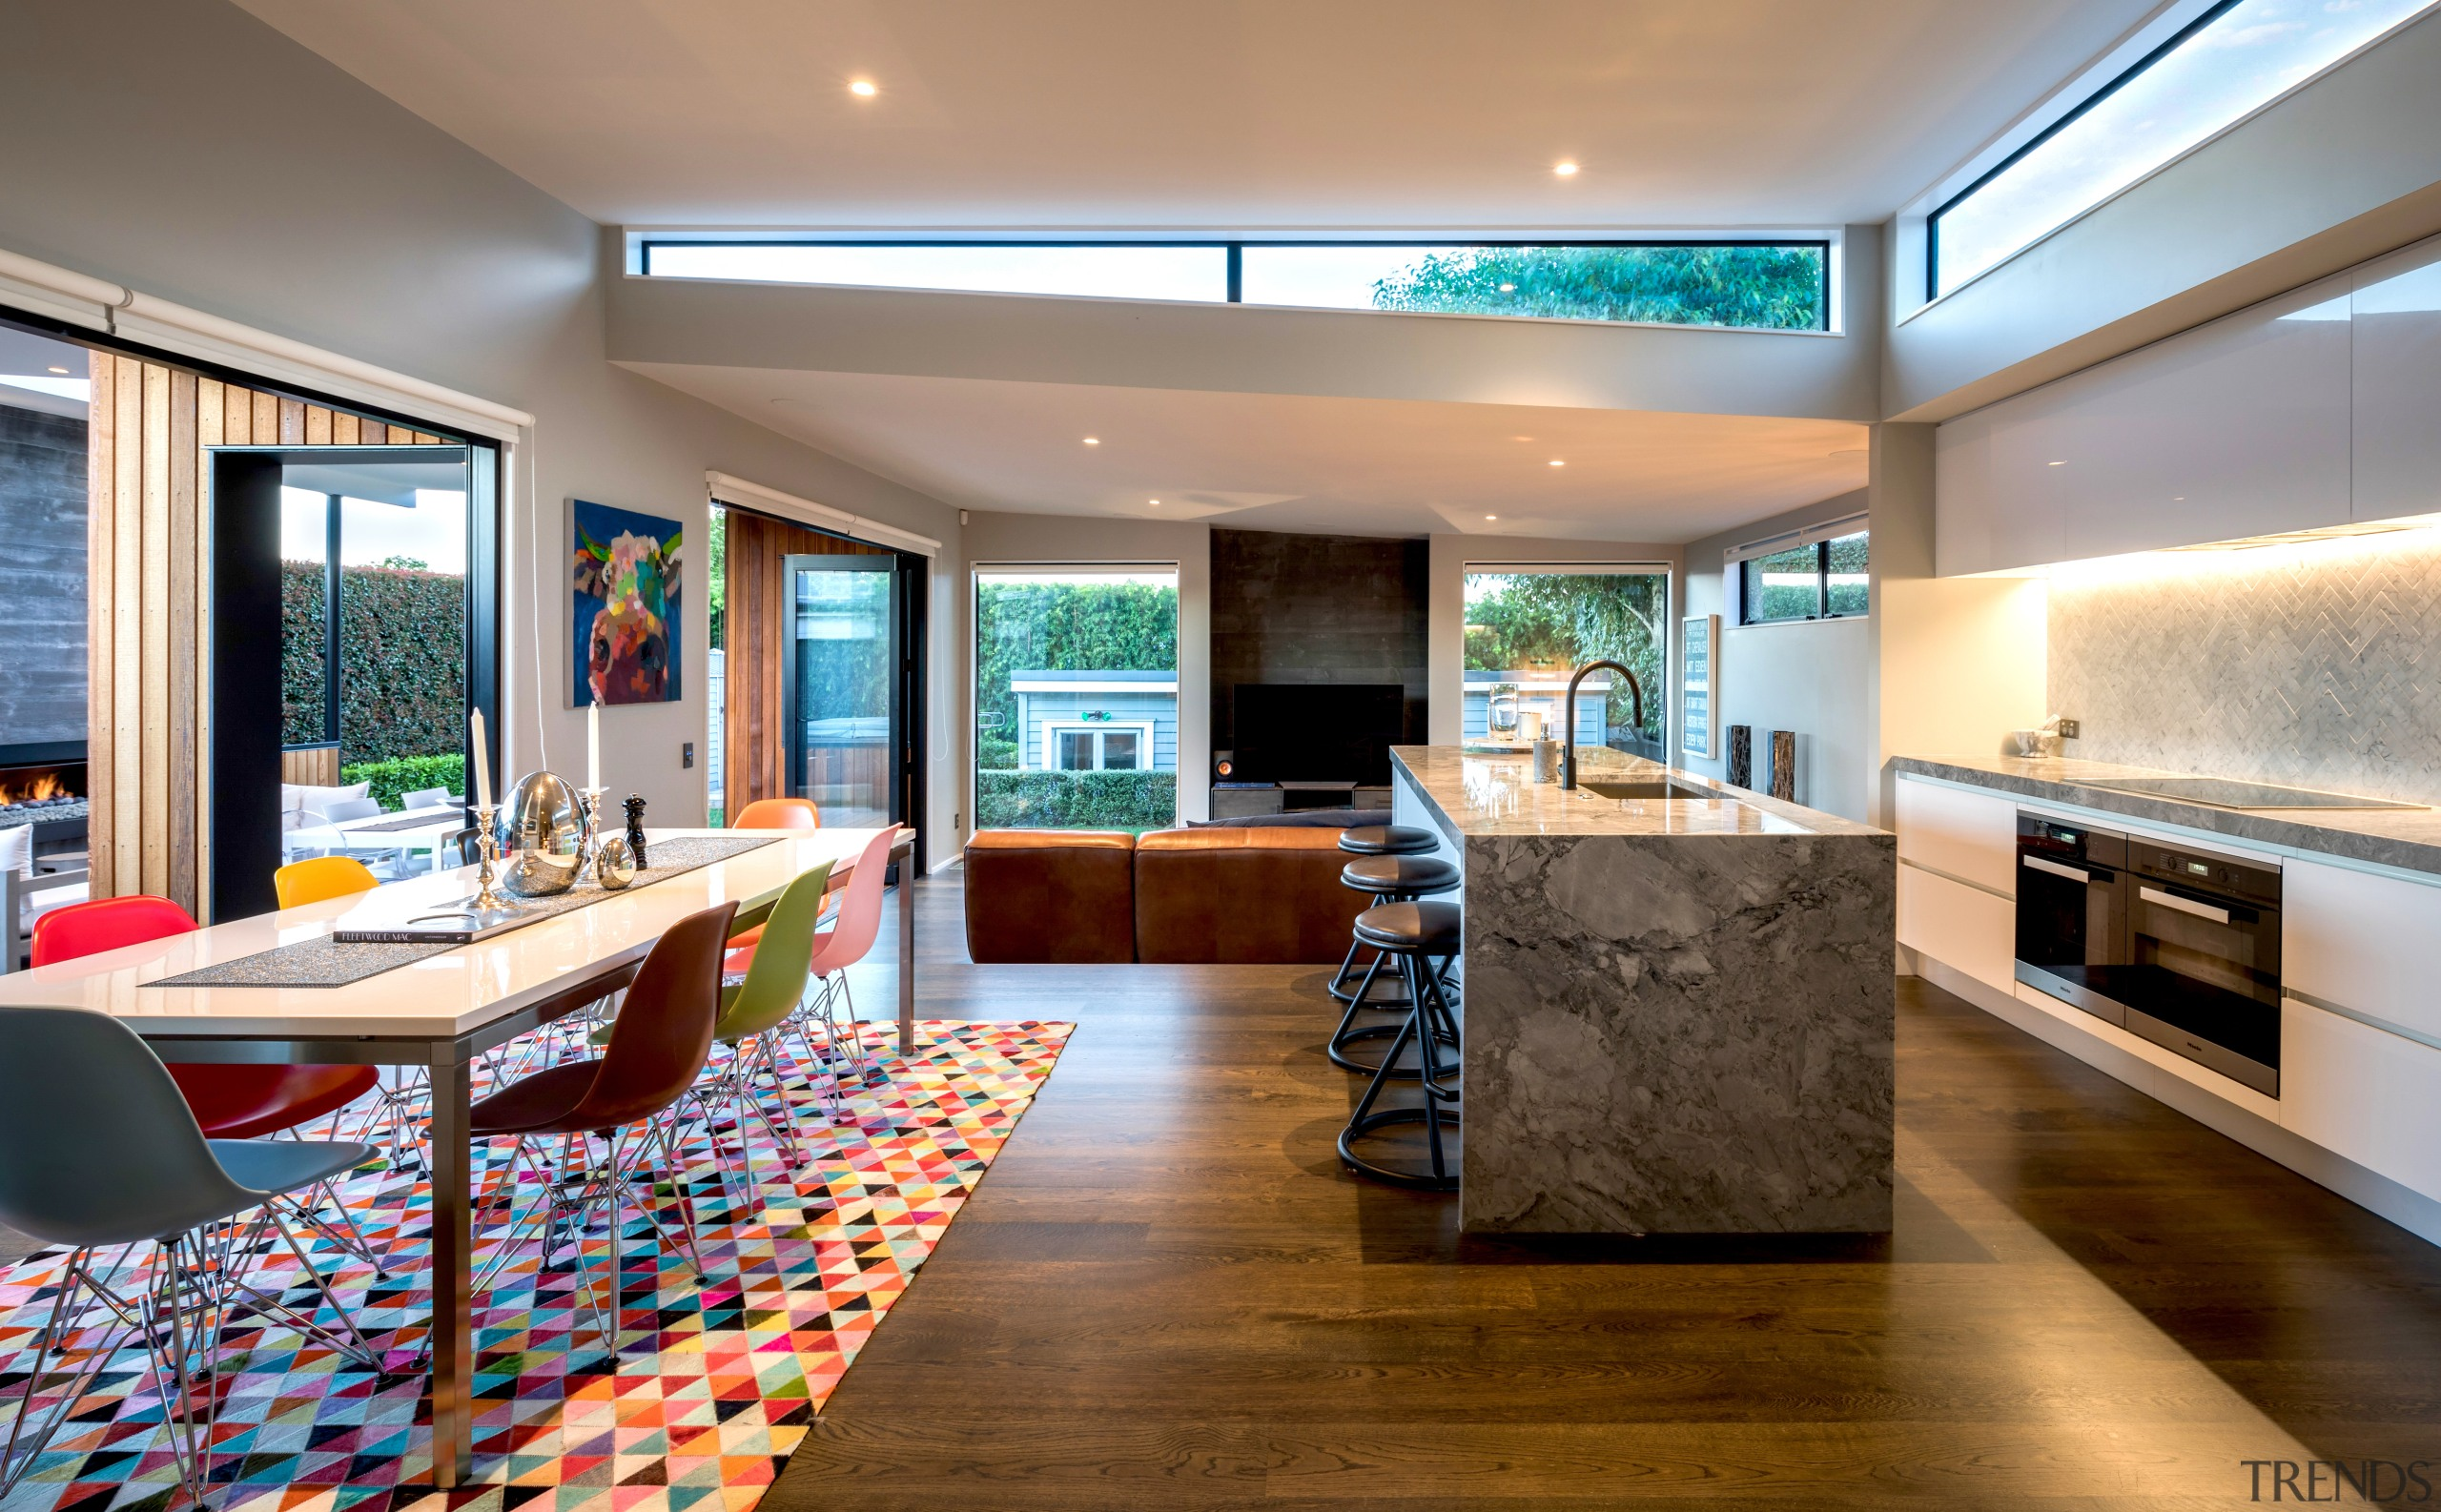 A pop-up roof over the kitchen/dining space provides architecture, building, cabinetry, ceiling, countertop, design, floor, flooring, furniture, hardwood, home, house, interior design, kitchen, lighting, living room, property, real estate, room, table, wood flooring, gray